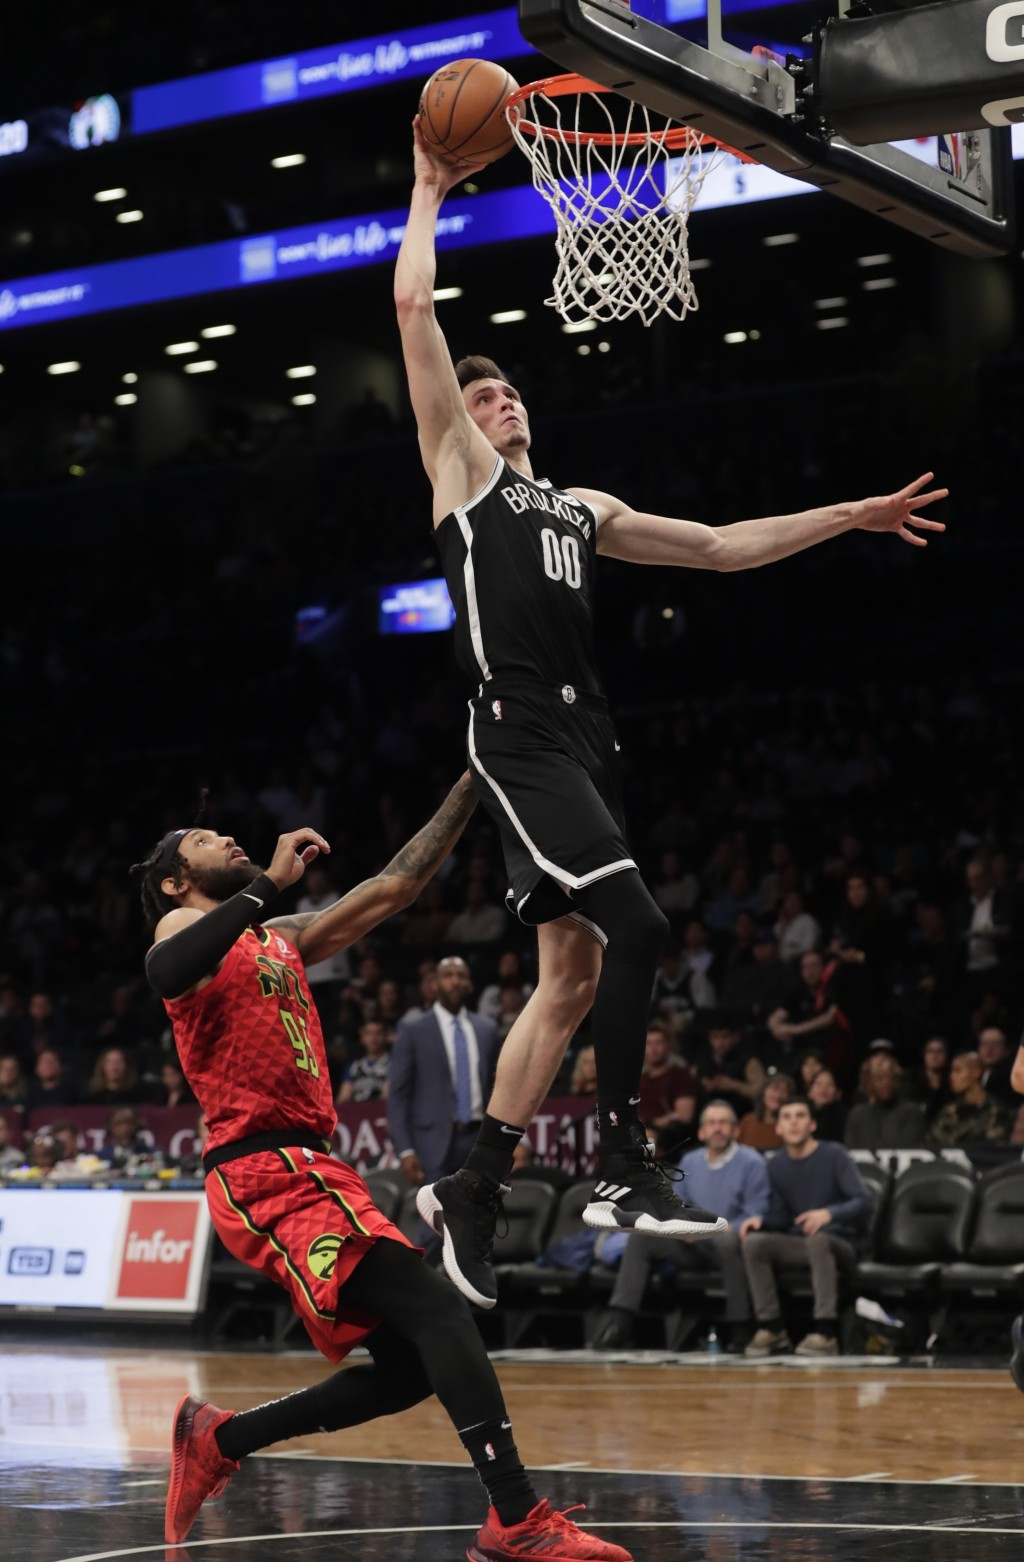 Brooklyn Nets' Rodions Kurucs (00) dunks in front of Atlanta Hawks' DeAndre' Bembry (95) during the second half of an NBA basketball game Wednesday, J